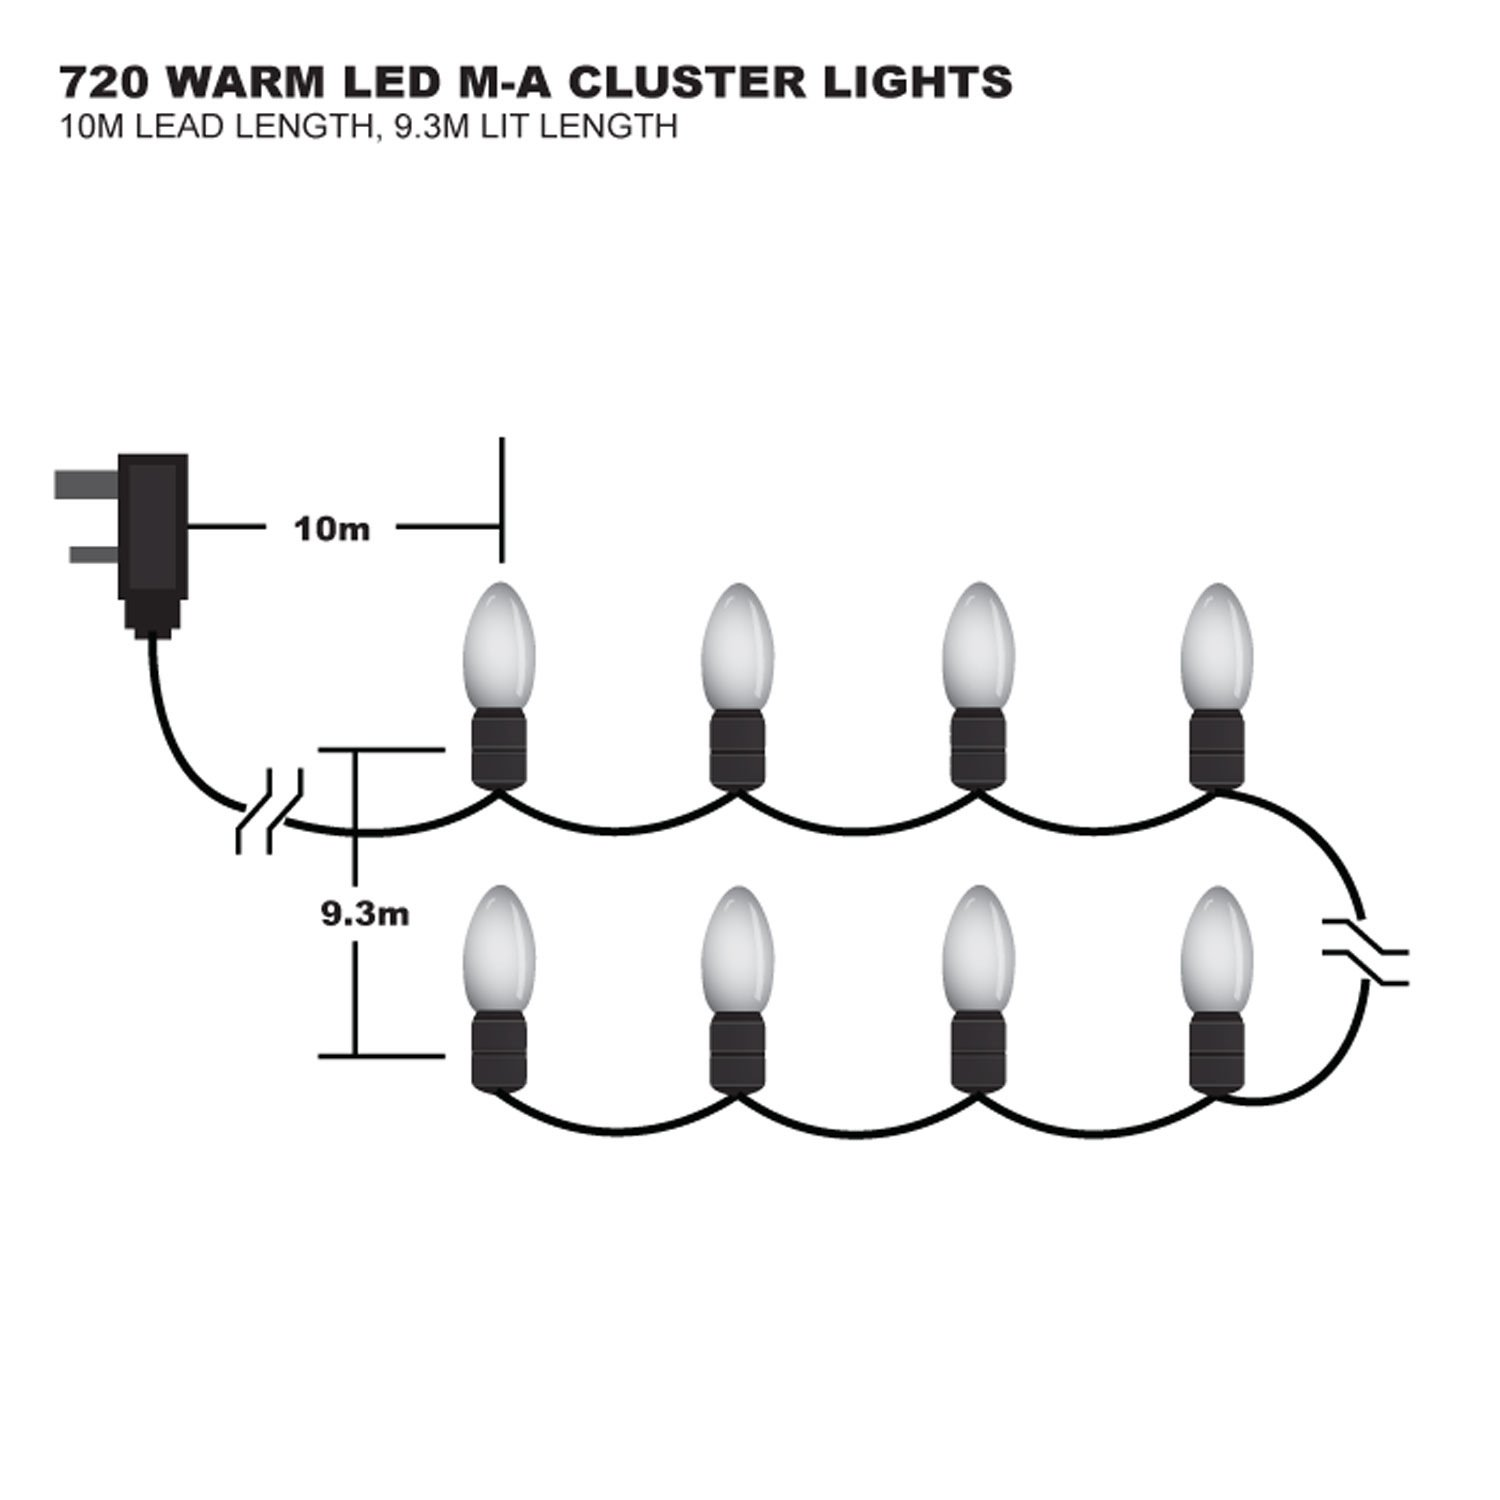 720 W White Multi Action Cluster Premier Christmas Lights Ac Wiring Diagram Led Lv082120ww Kitchen Home